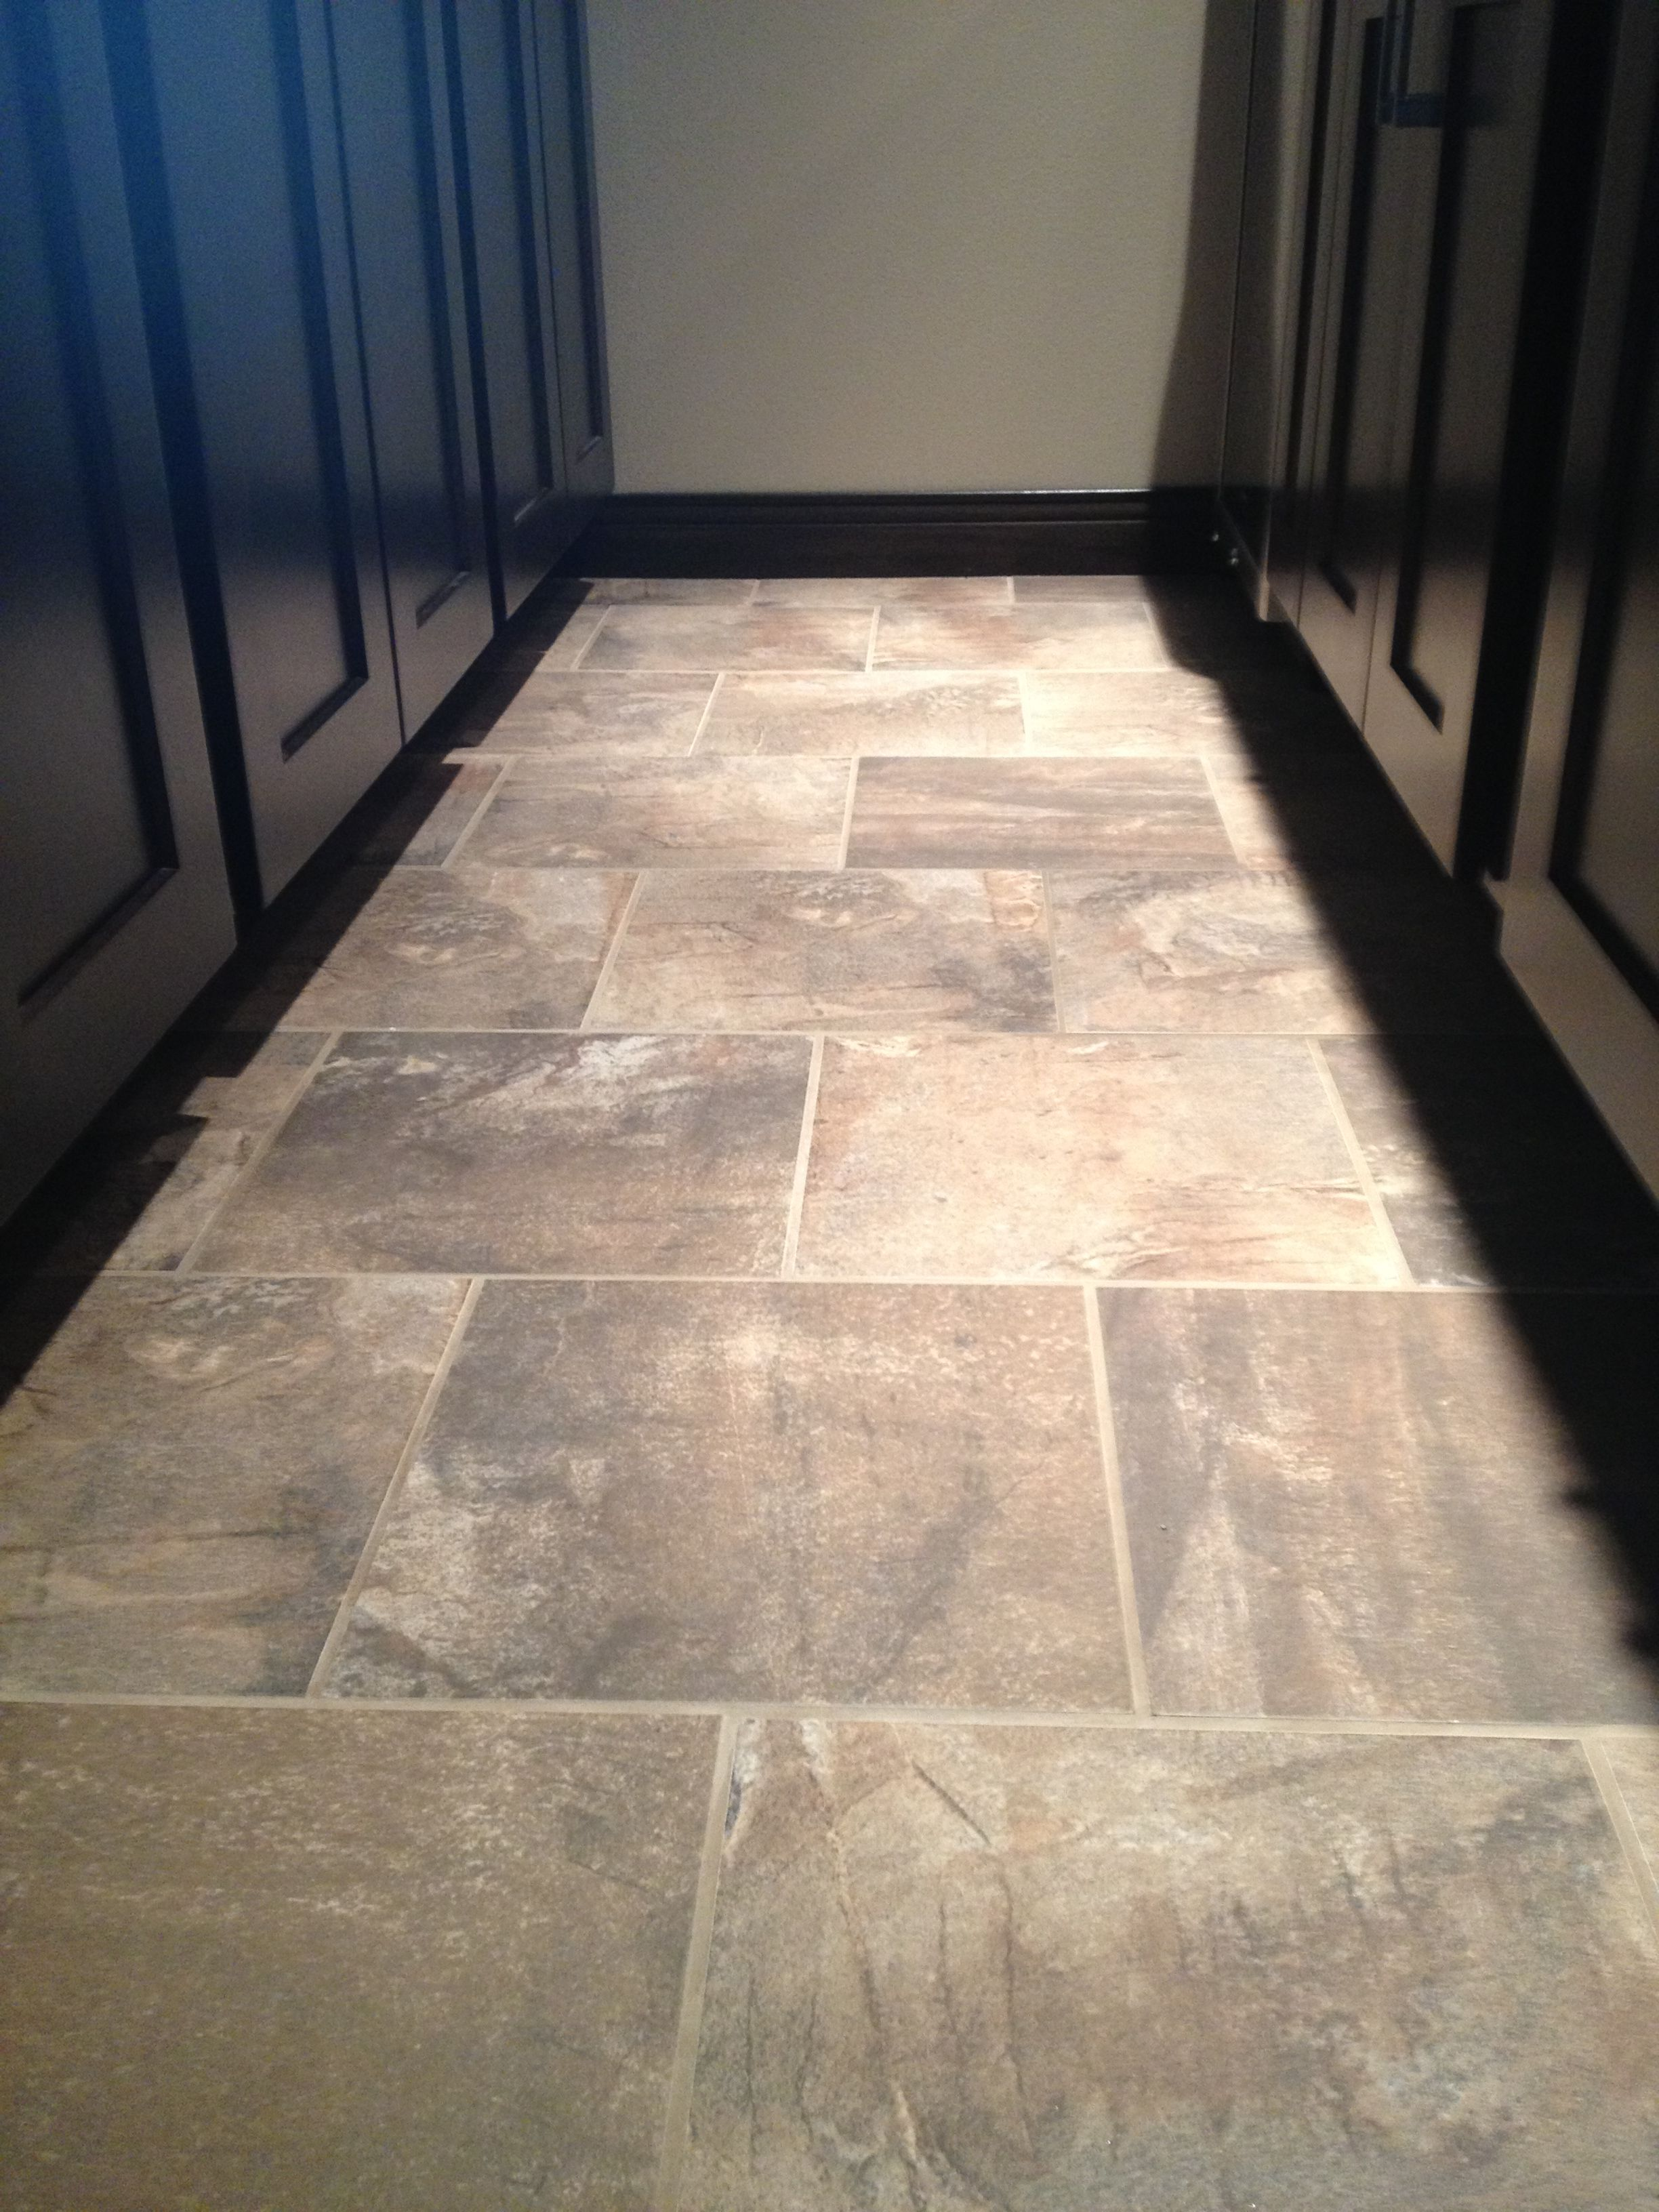 Gerard homes 2013 parade 13x13 porcelain tile flooring in a 13x13 porcelain tile flooring in a staggered pattern dailygadgetfo Choice Image